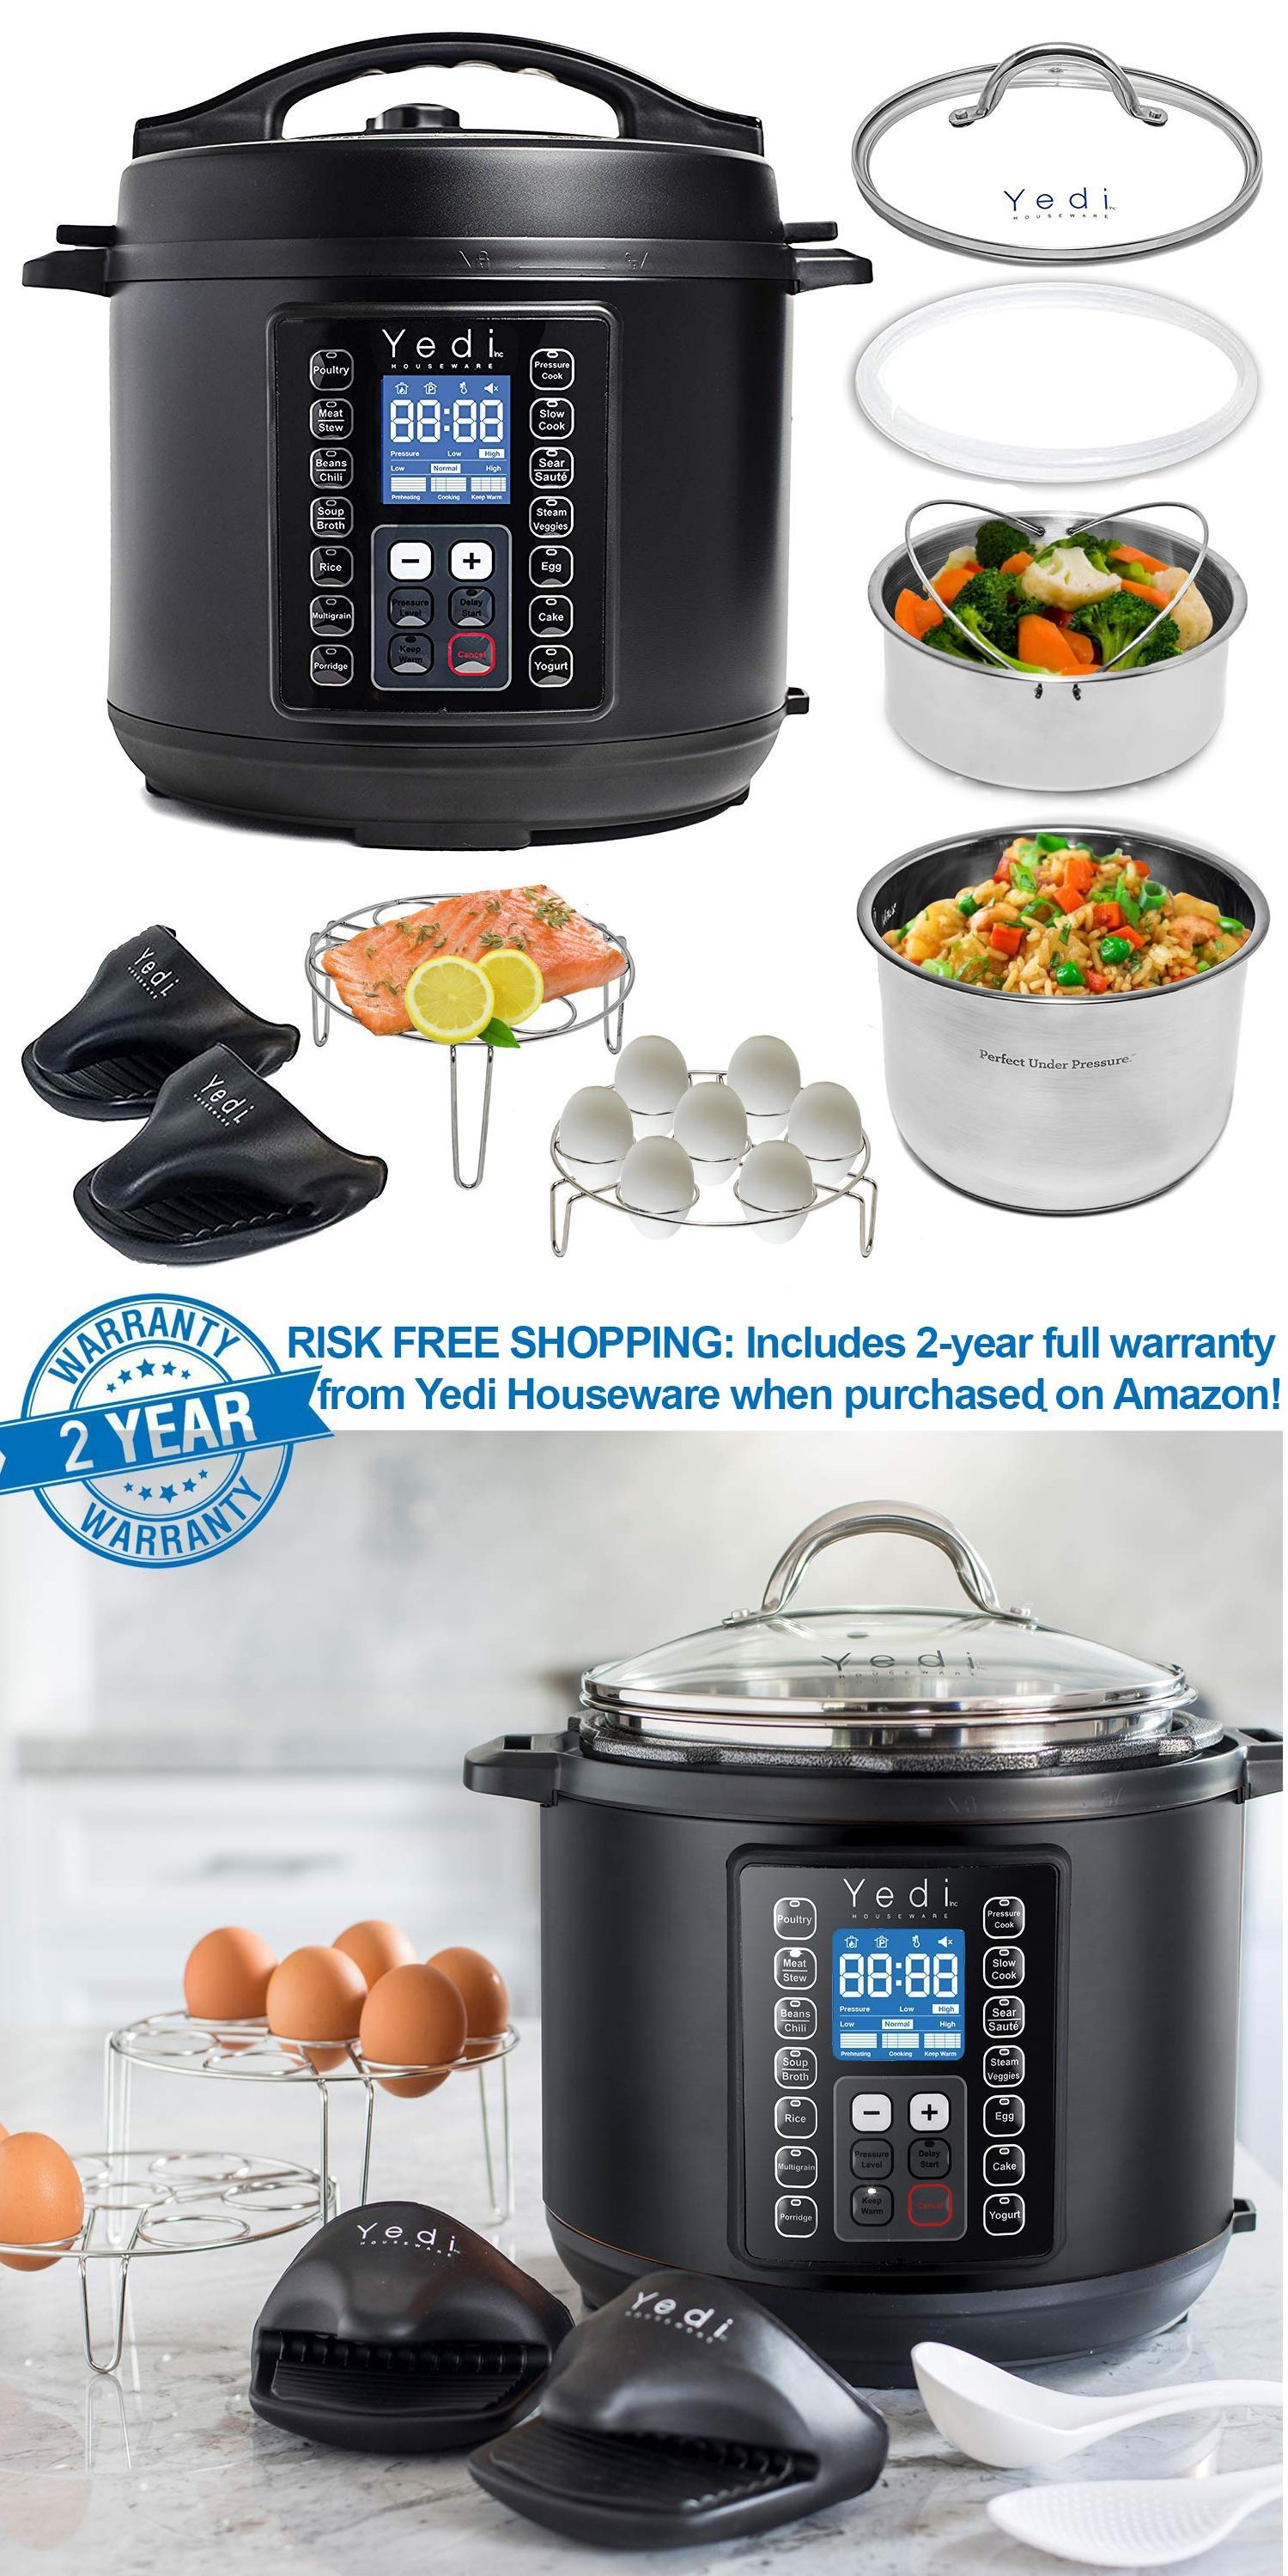 Yedi 9-in-1 Total Package Instant Programmable Pressure